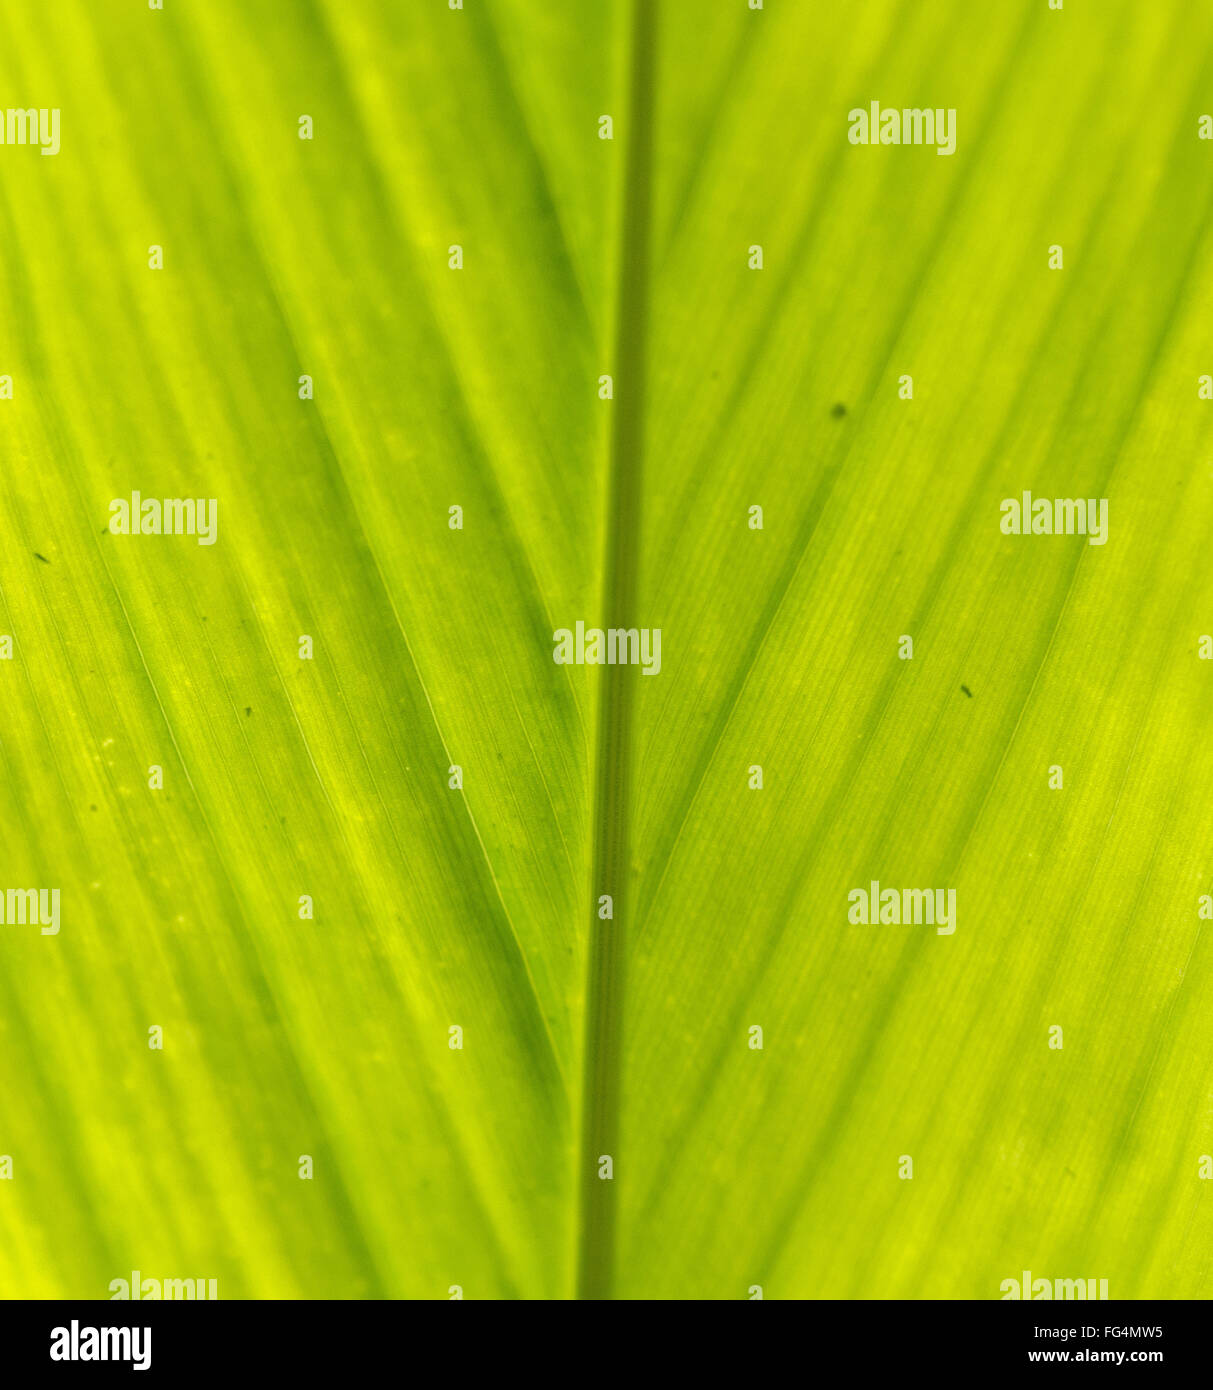 Green veins of the leaf backlit by the sun showing classif fishbone analysis in management - Stock Image